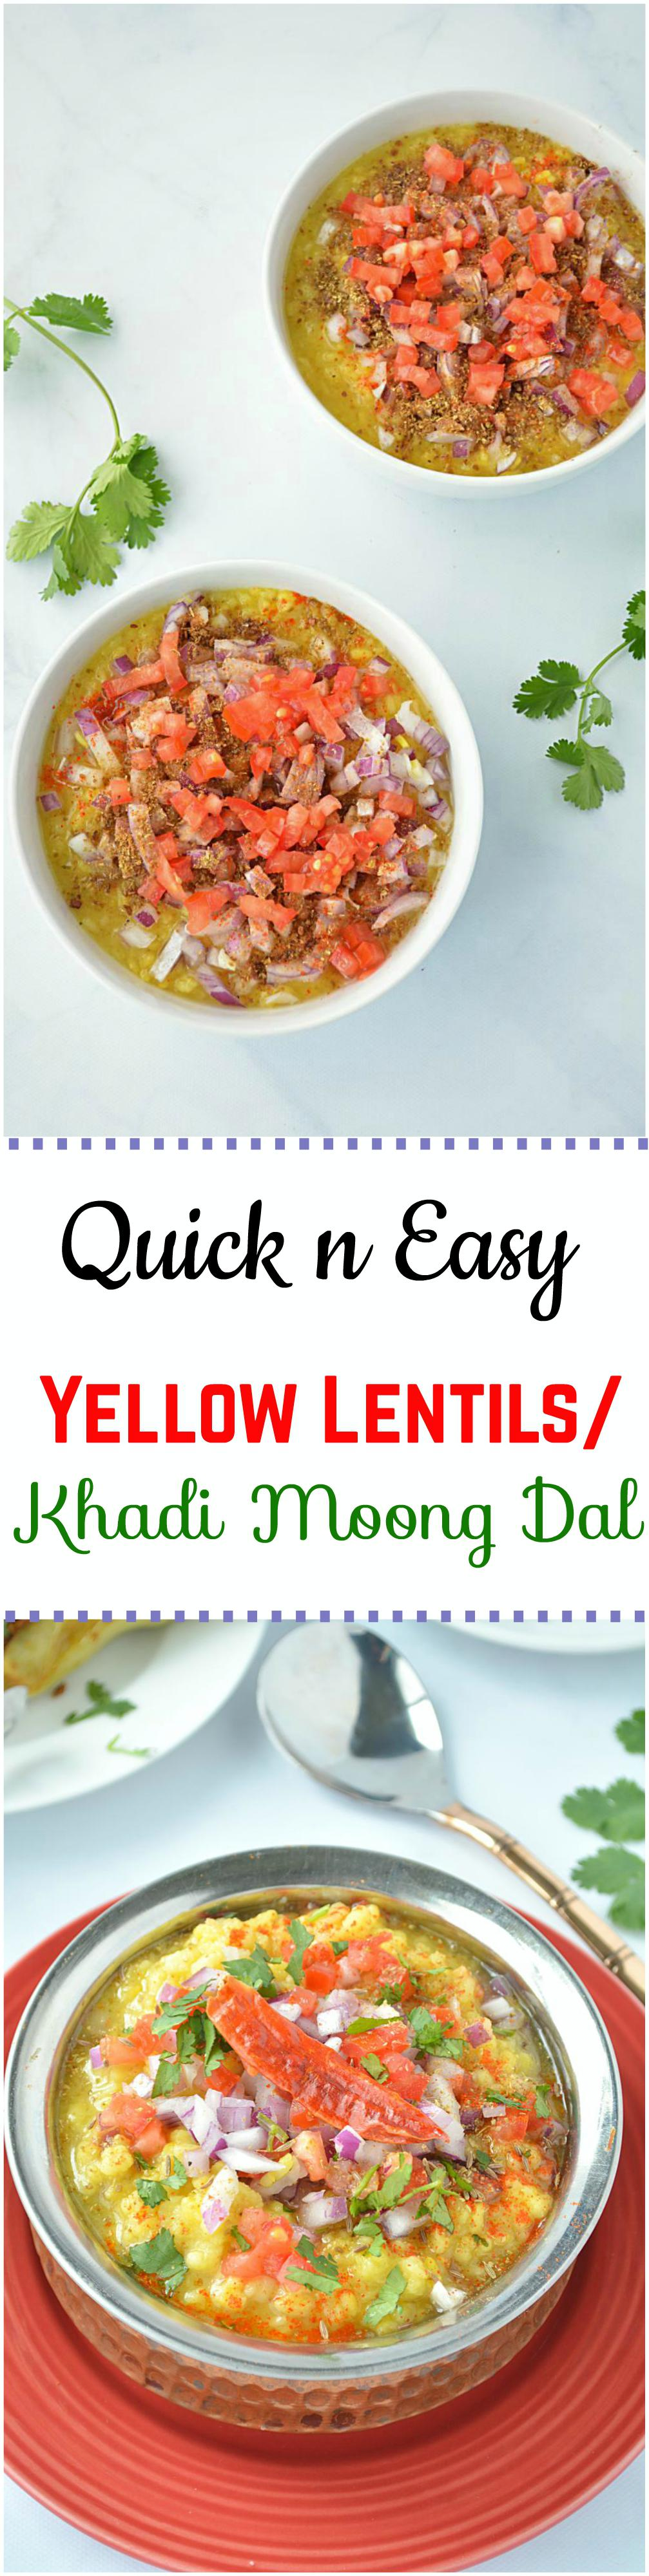 Quick and easy yellow lentils recipe topped with chopped onions,tomatoes & spices. It will leave your taste buds asking for more.